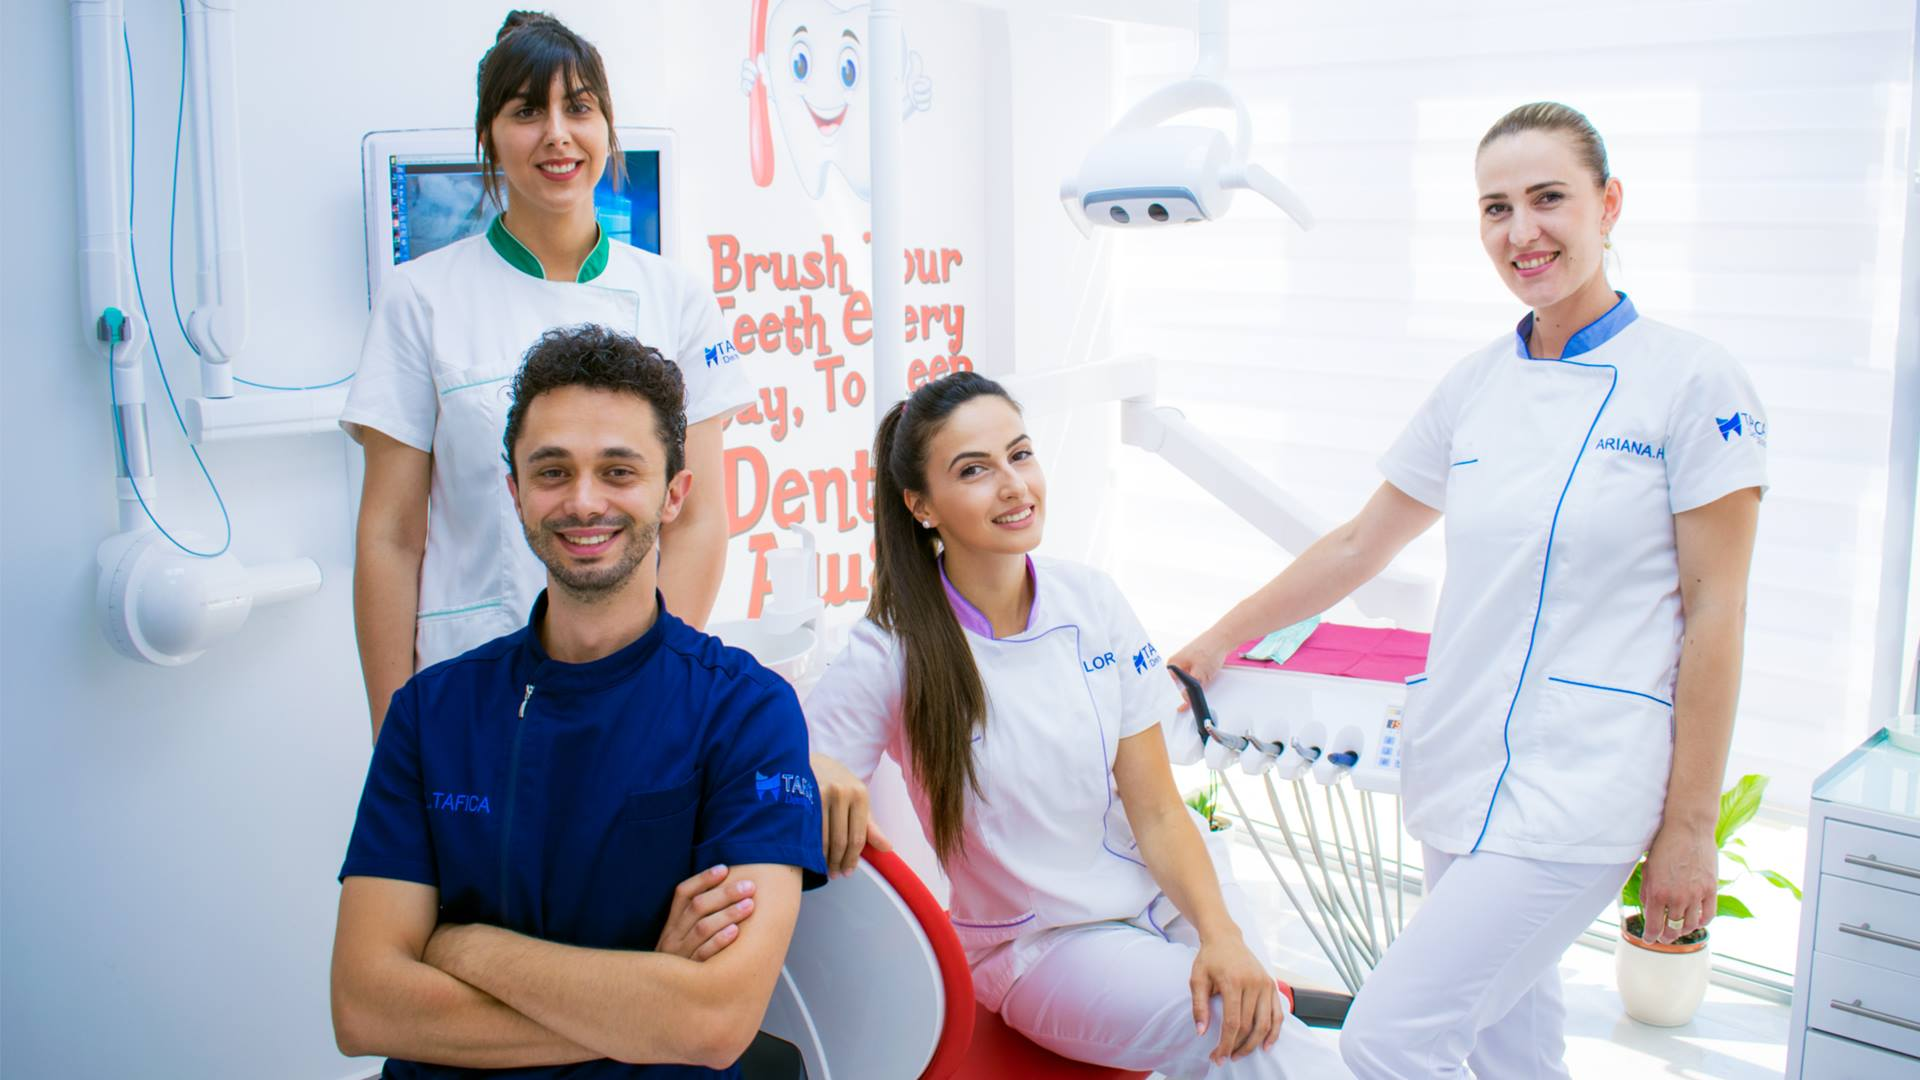 2018 | SuperSmile Dentist Dr Liridon Tafica in Ulcinj/Ulqin joint the Hub